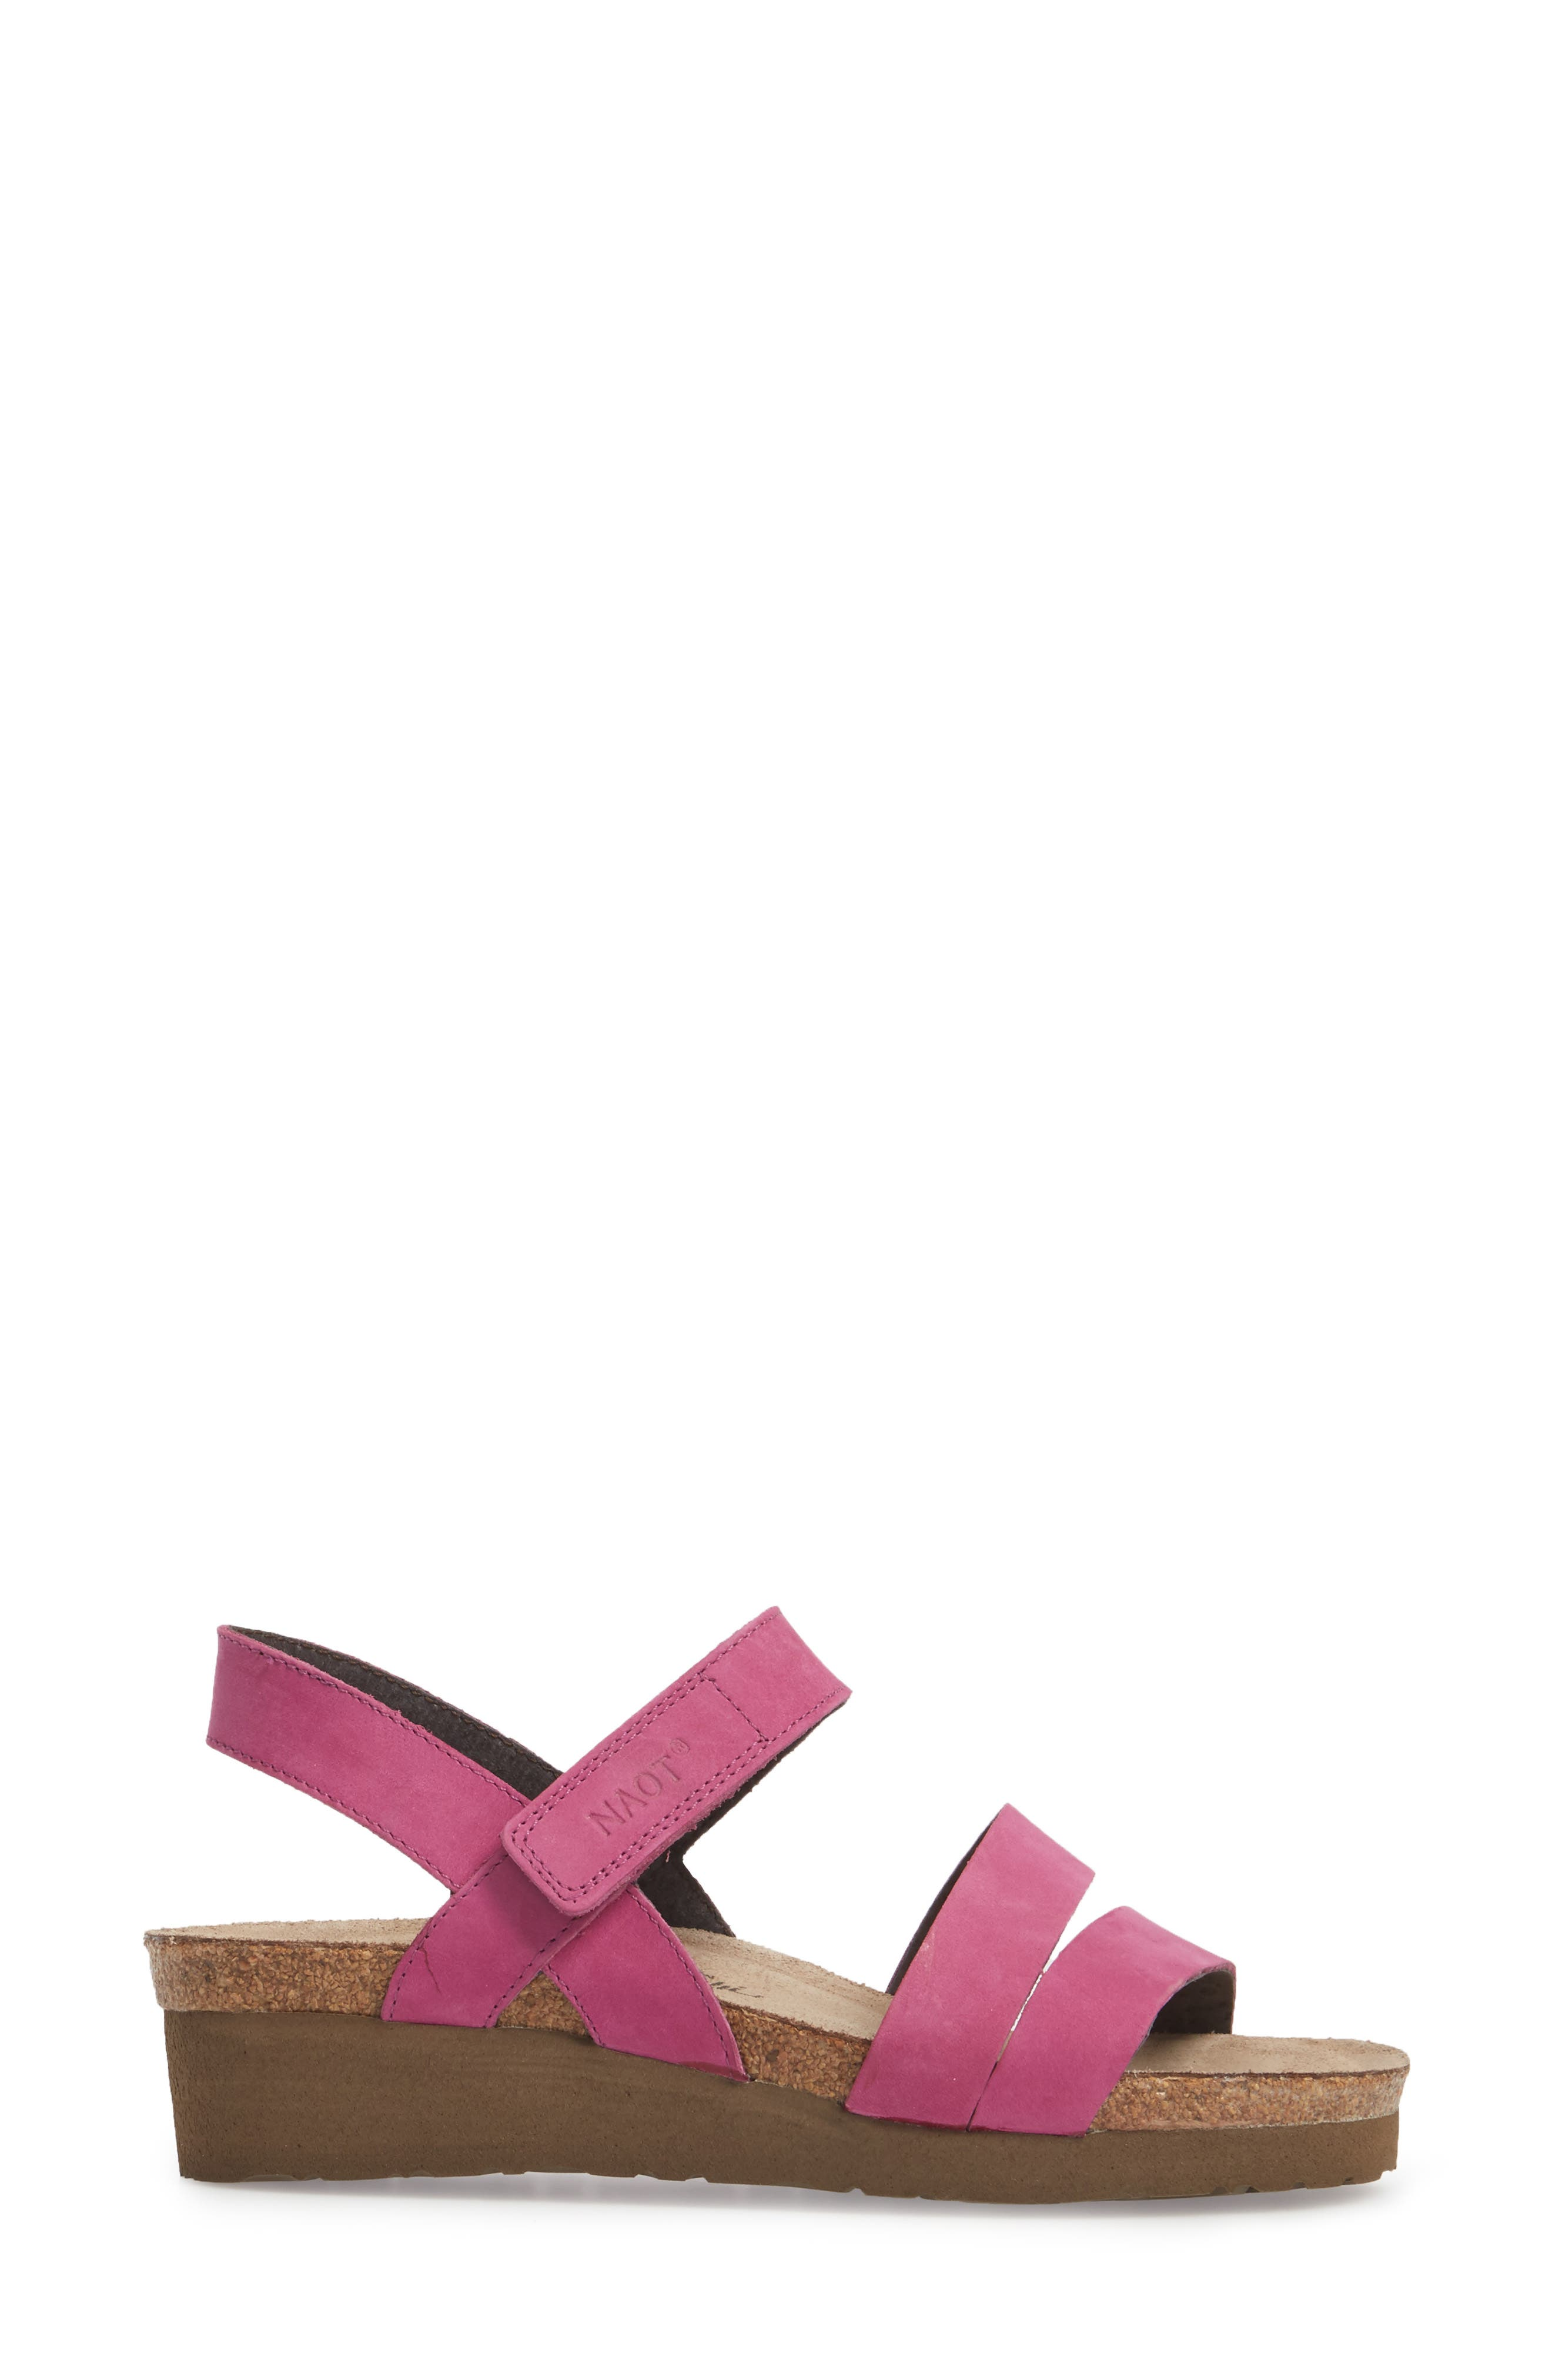 'Kayla' Sandal,                             Alternate thumbnail 3, color,                             Pink Plum Nubuck